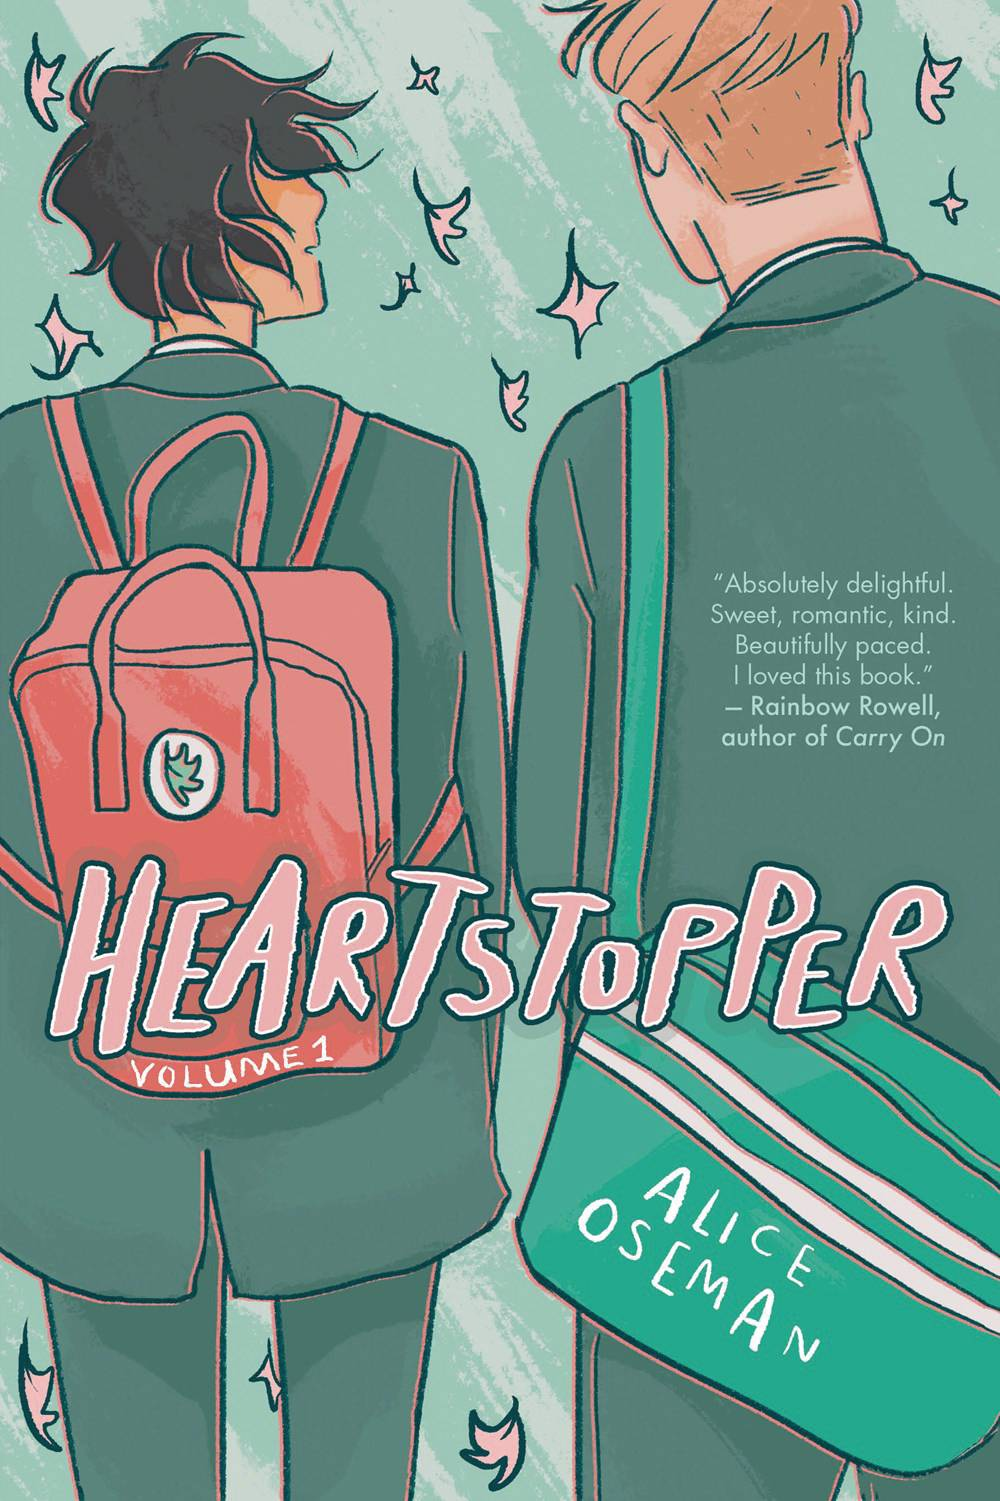 HEARTSTOPPER GN VOL 01